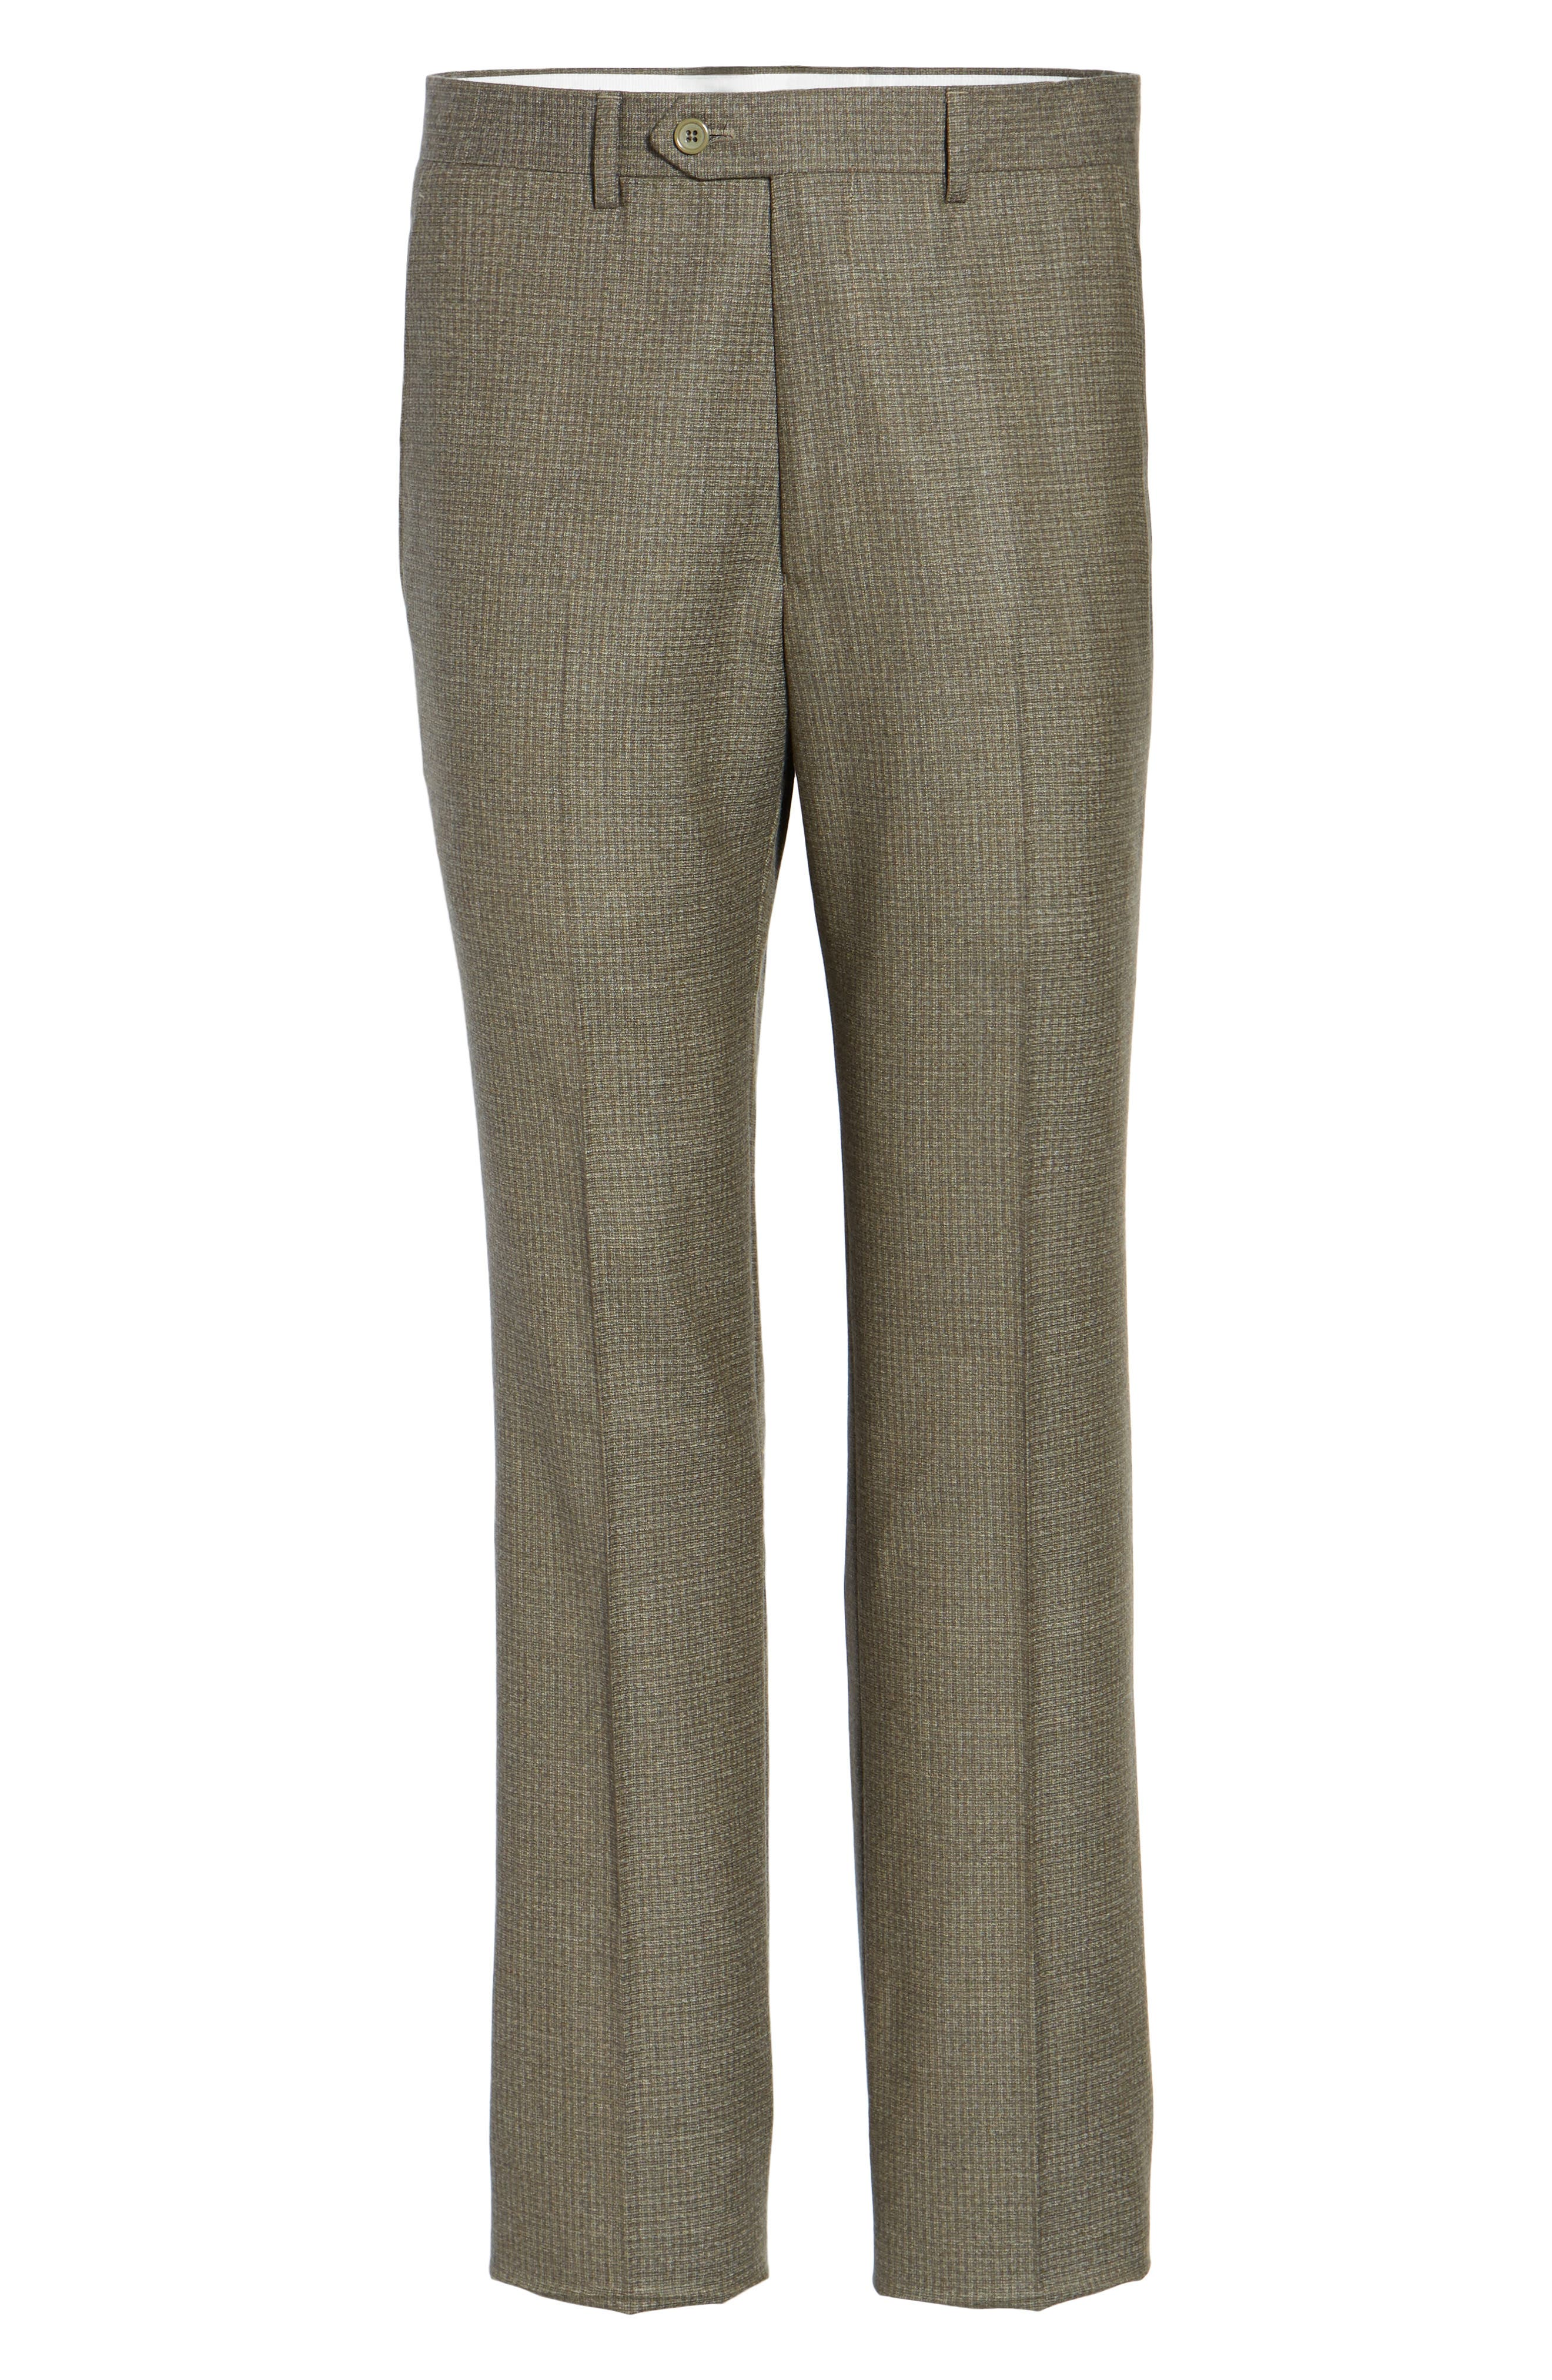 Romero Regular Fit Flat Front Trousers,                             Alternate thumbnail 6, color,                             Taupe